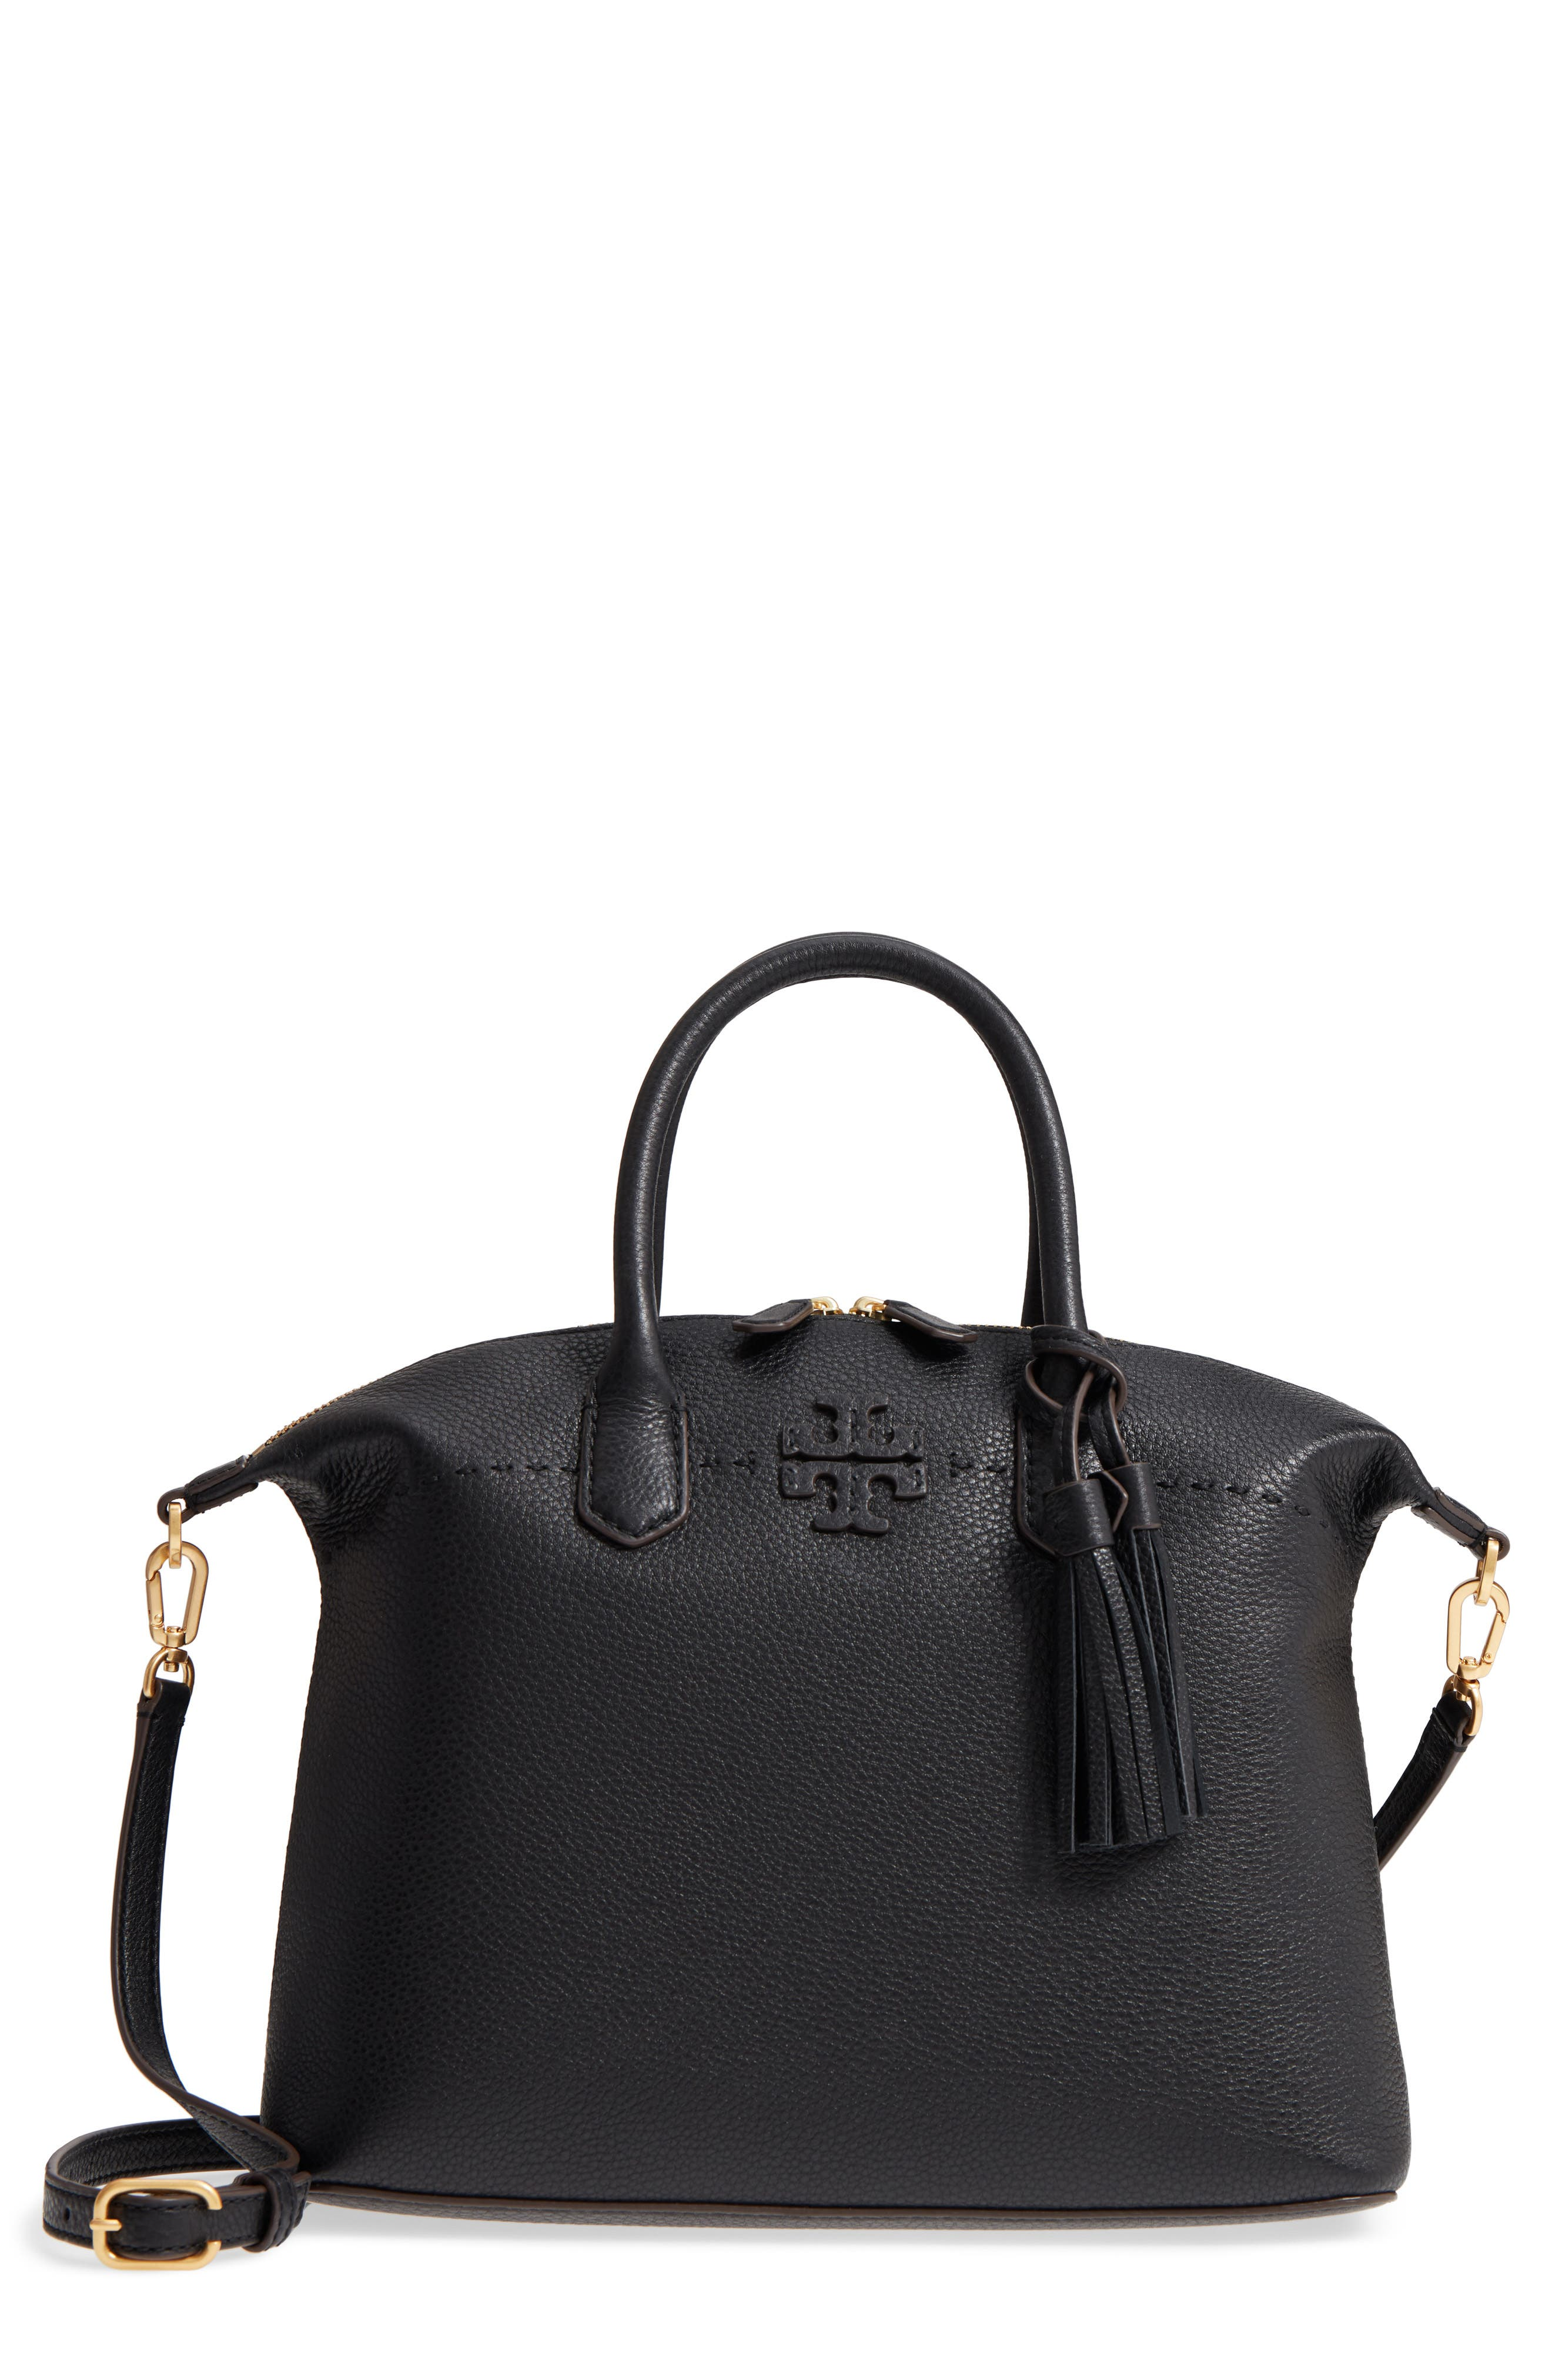 McGraw Slouchy Leather Satchel,                         Main,                         color, Black